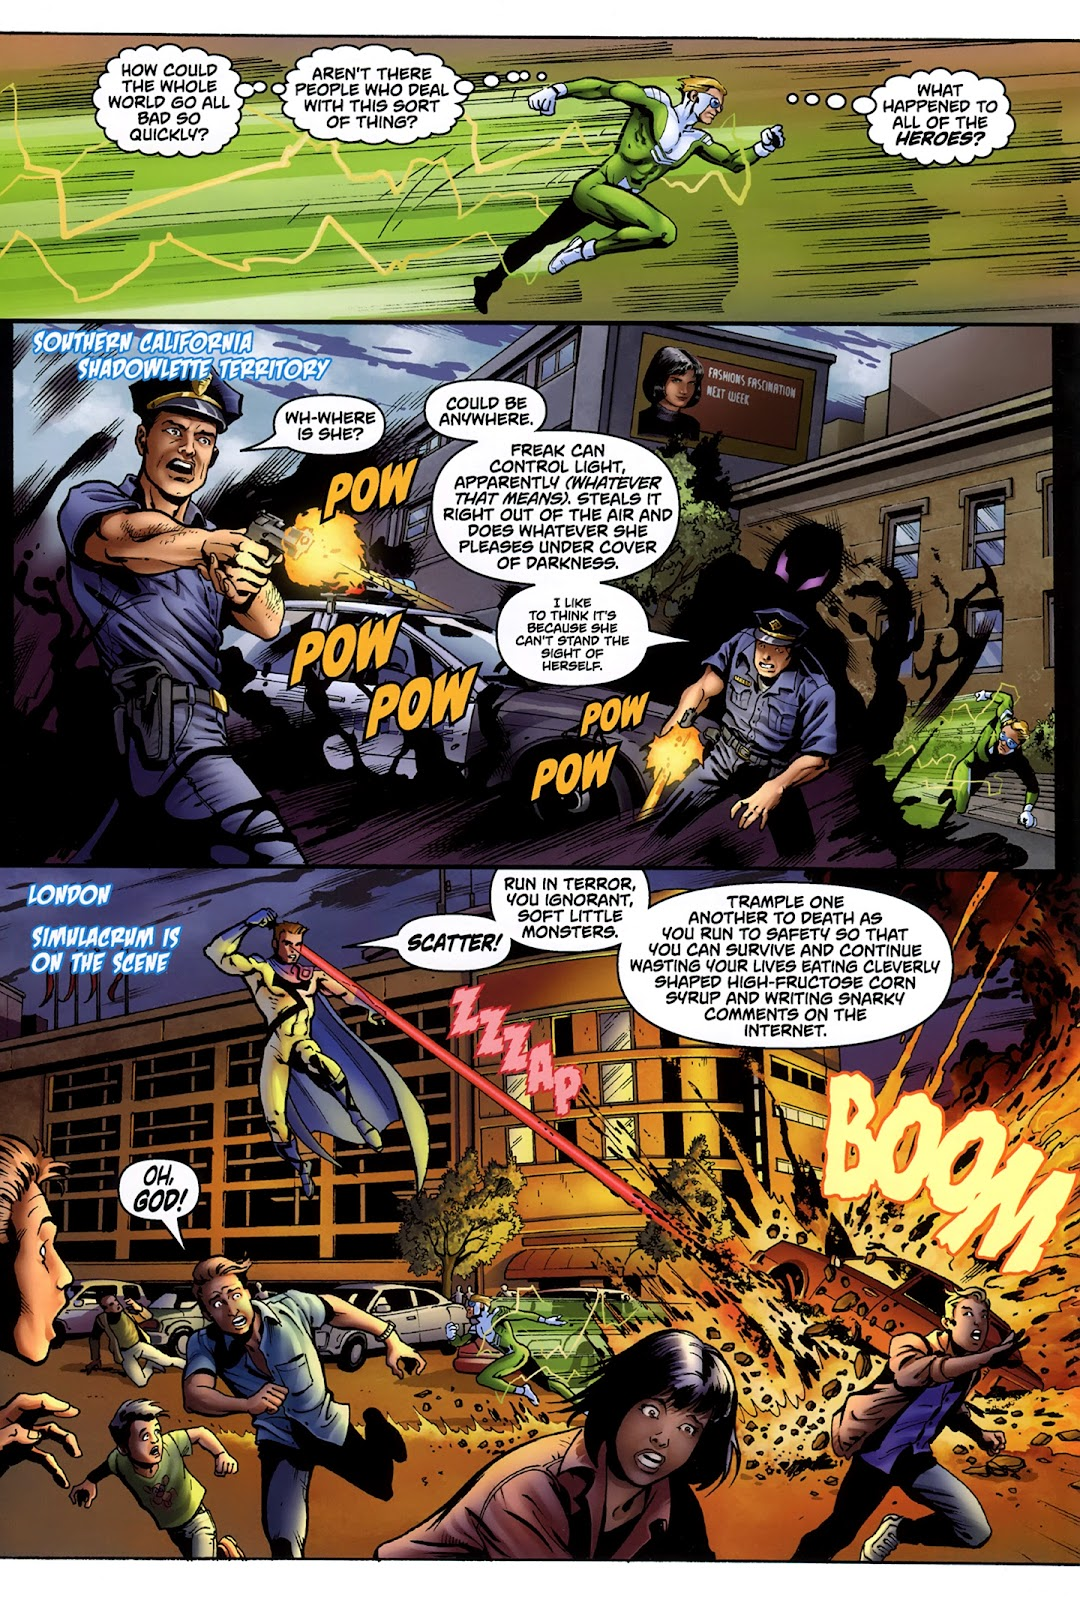 Read online Electric Youth comic -  Issue # Full - 14